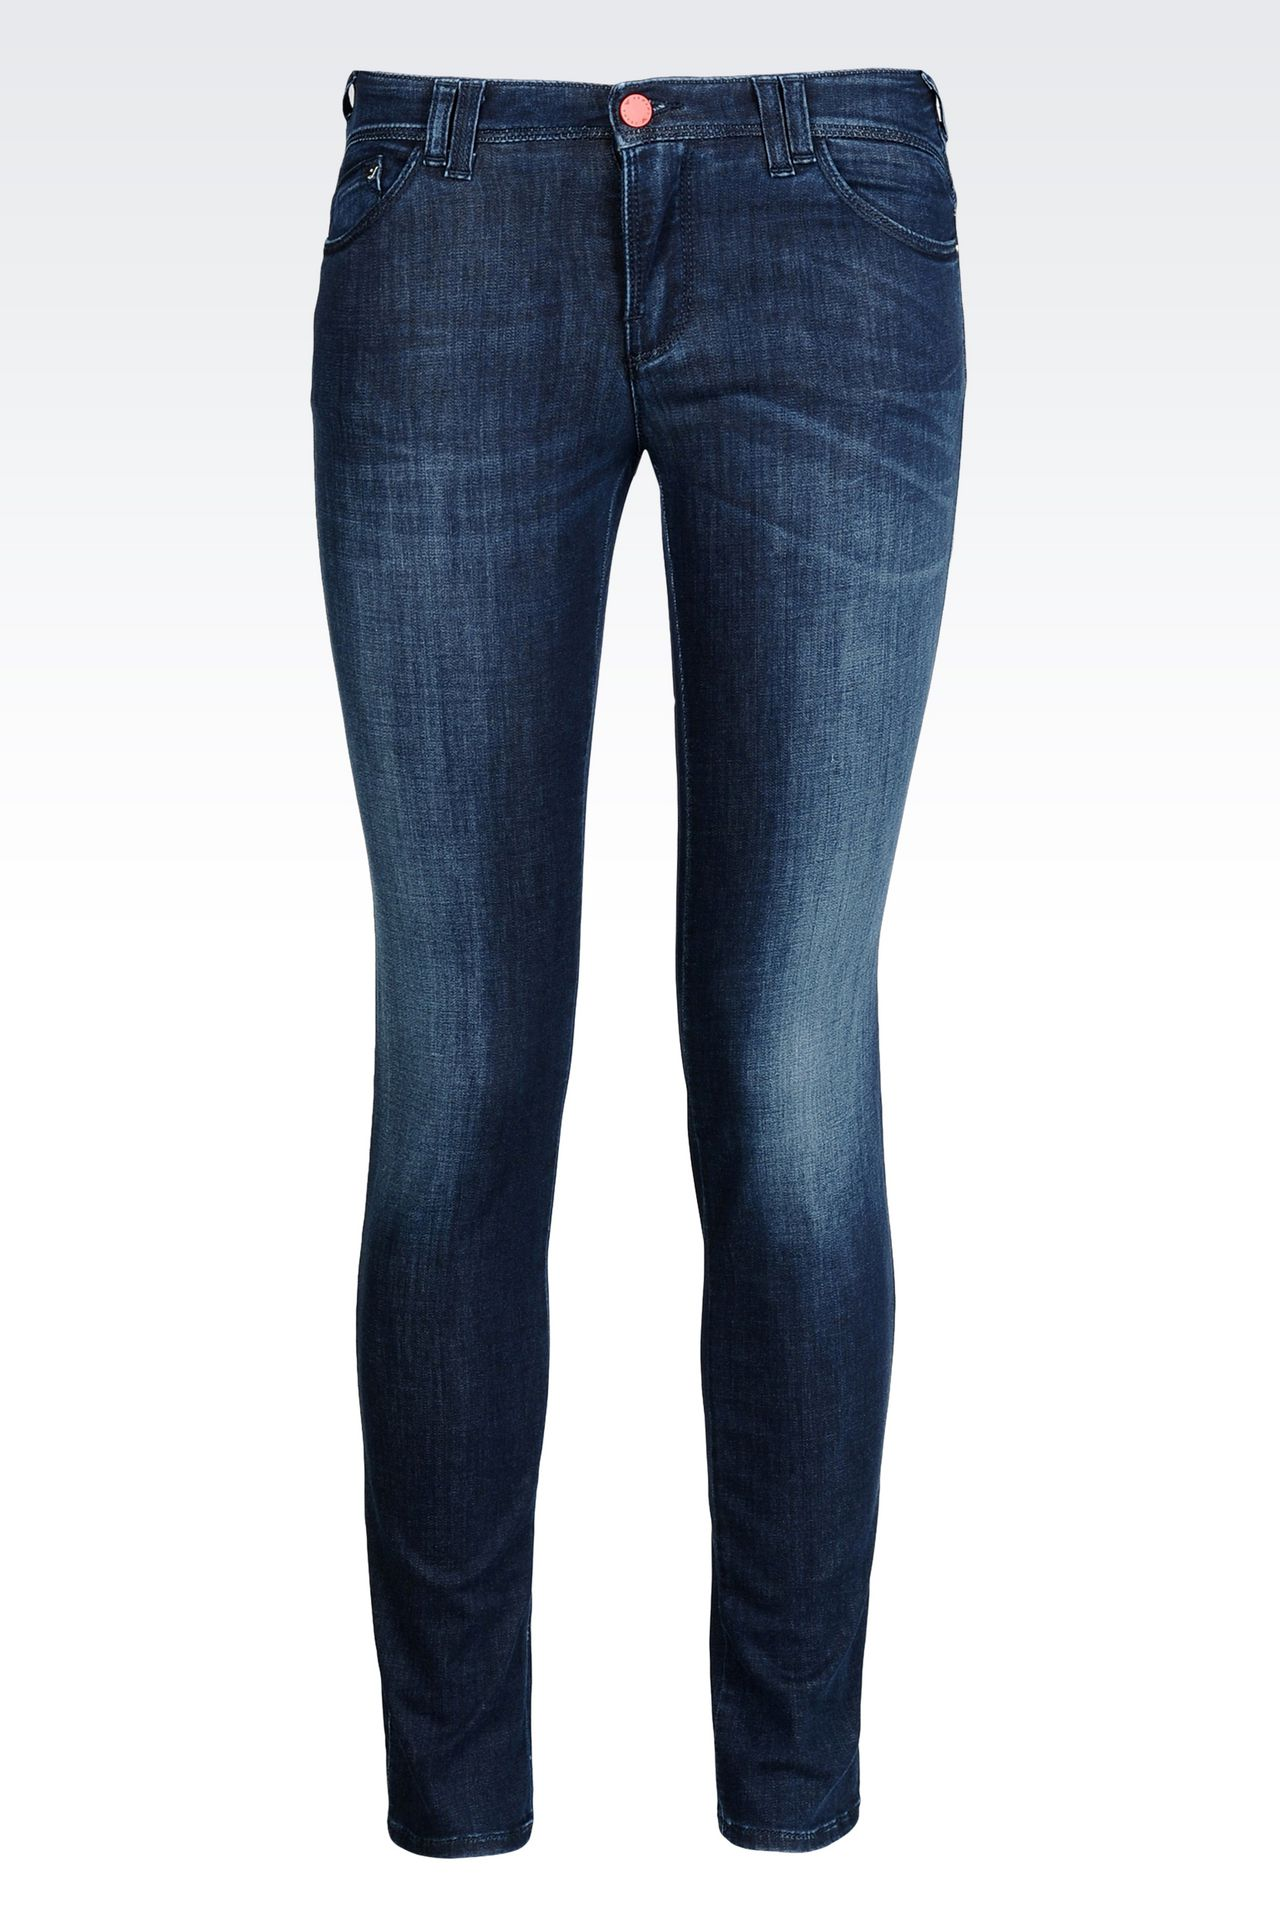 Dark Jeans For Women - Jeans Am